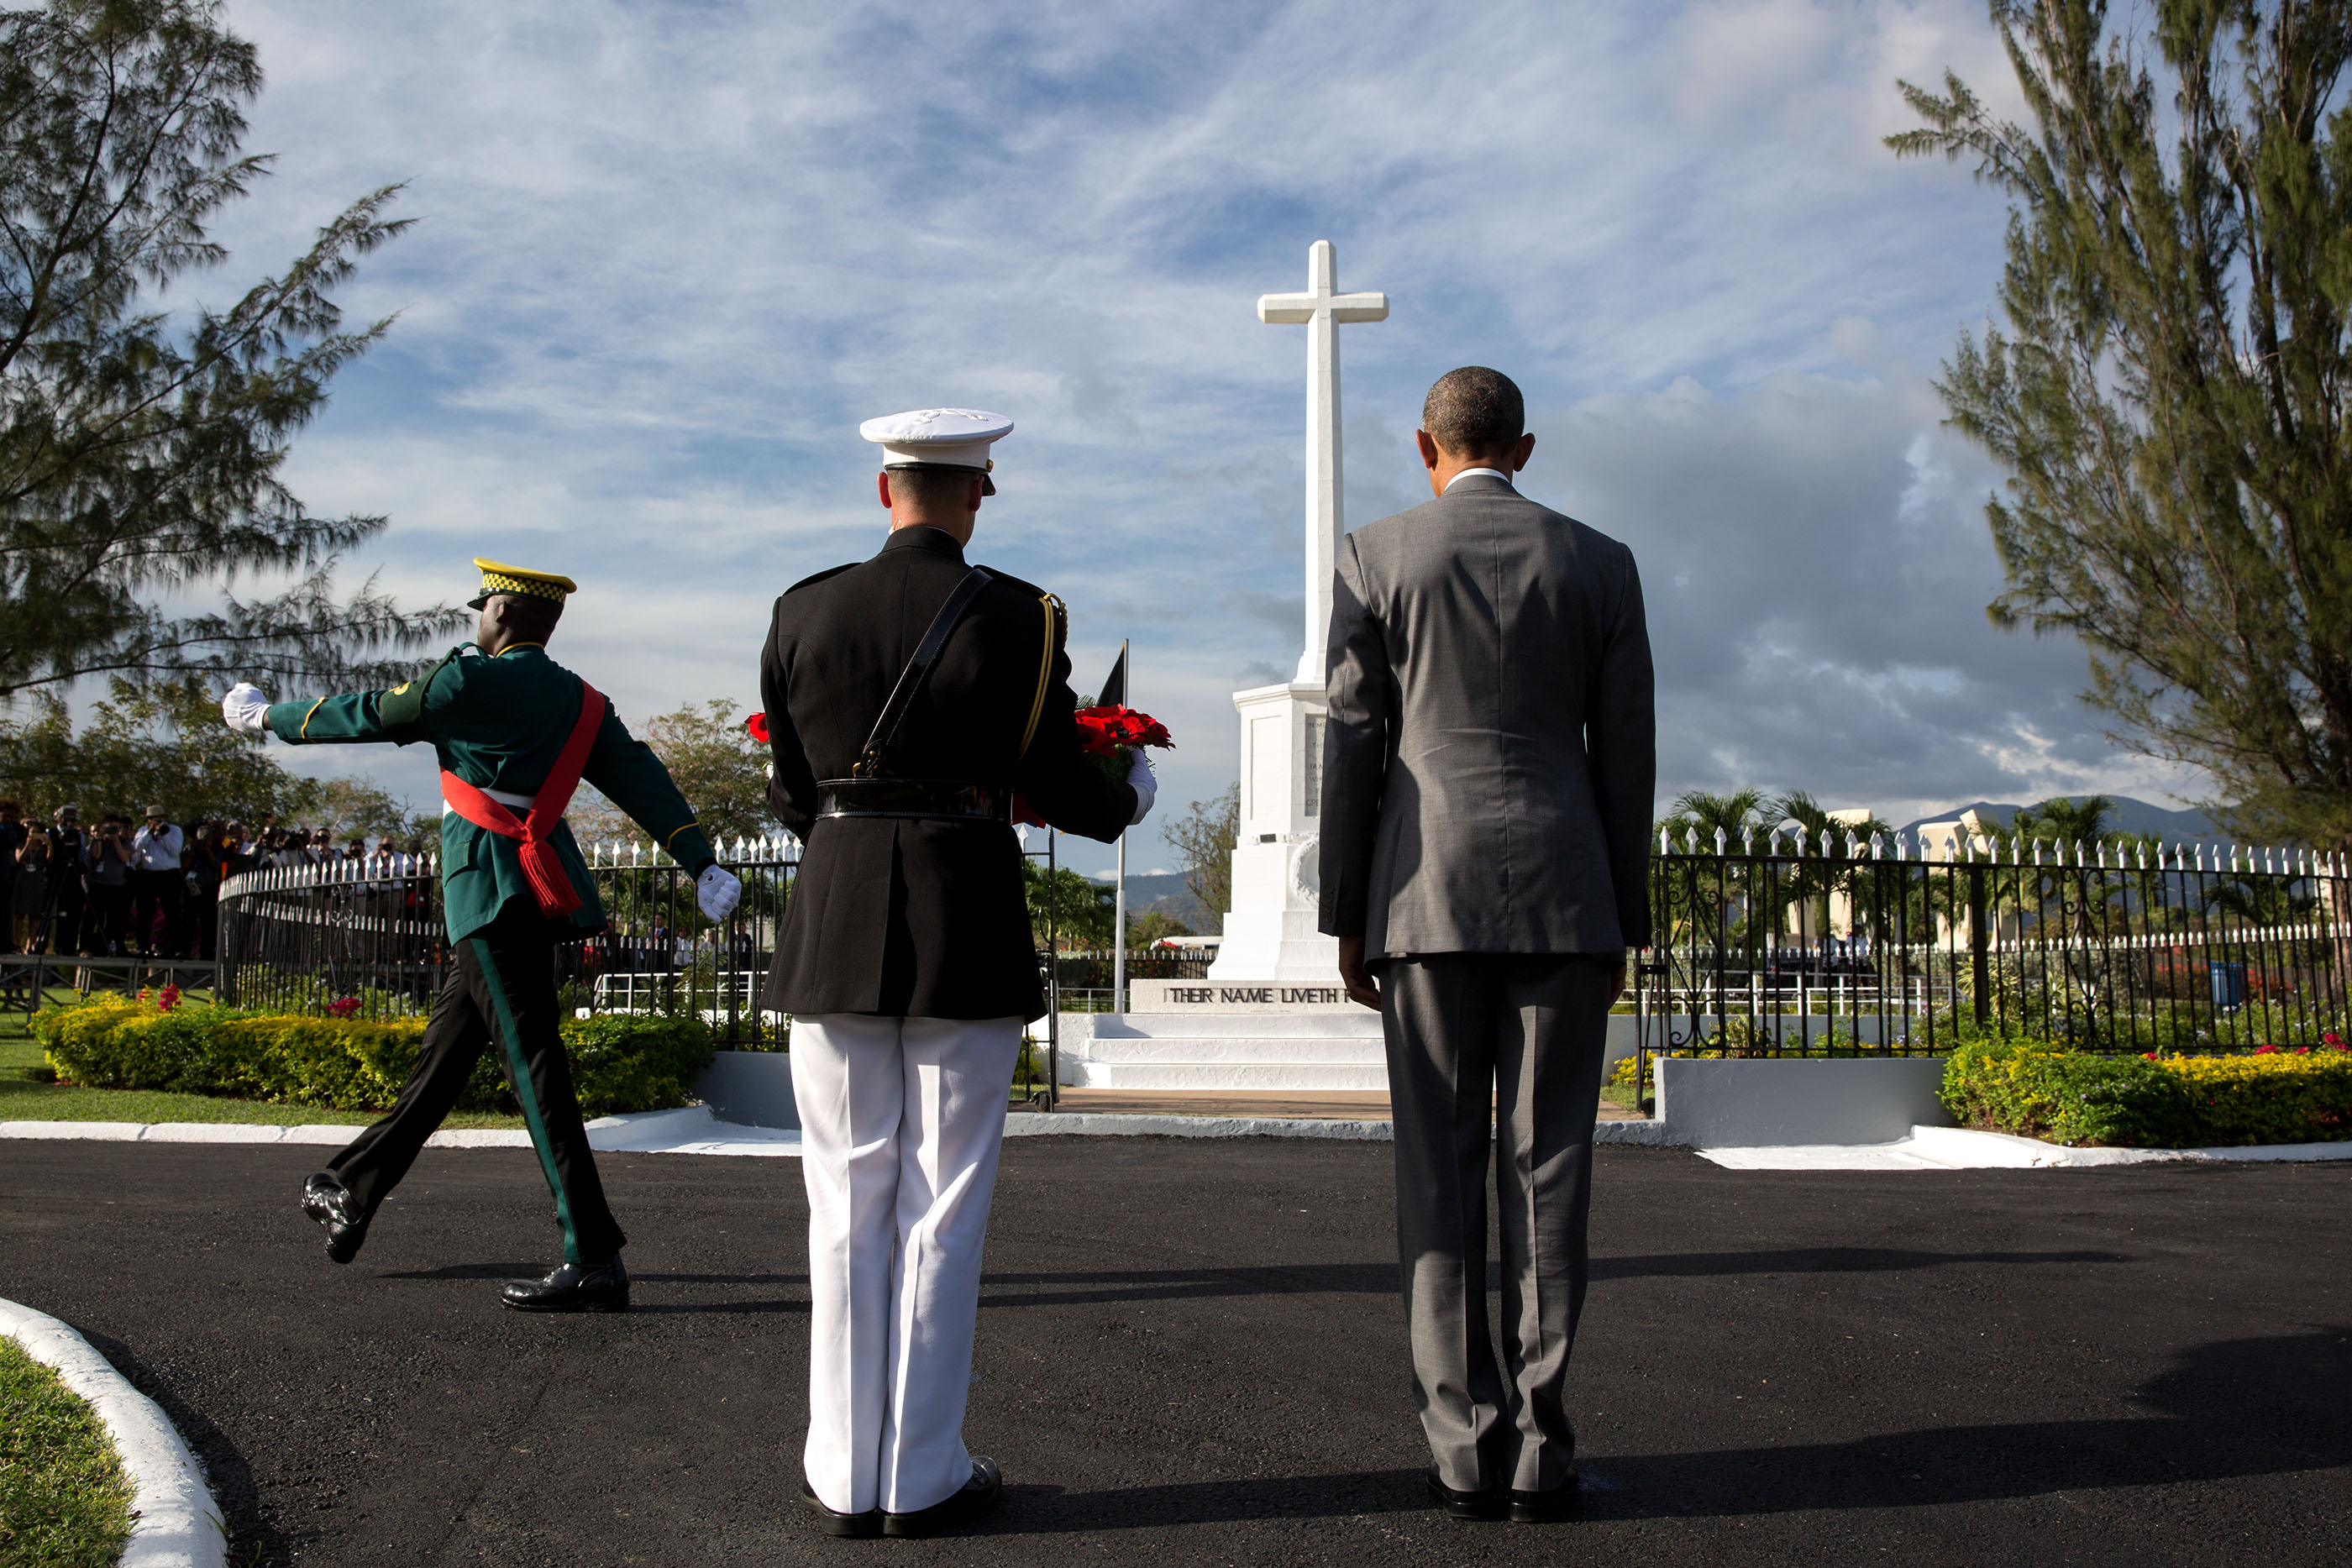 President Obama and Marine Corps military aide Steven Schreiber participate in a wreath laying ceremony at National Heroes Park in Kingston. (Official White House Photo by Pete Souza)